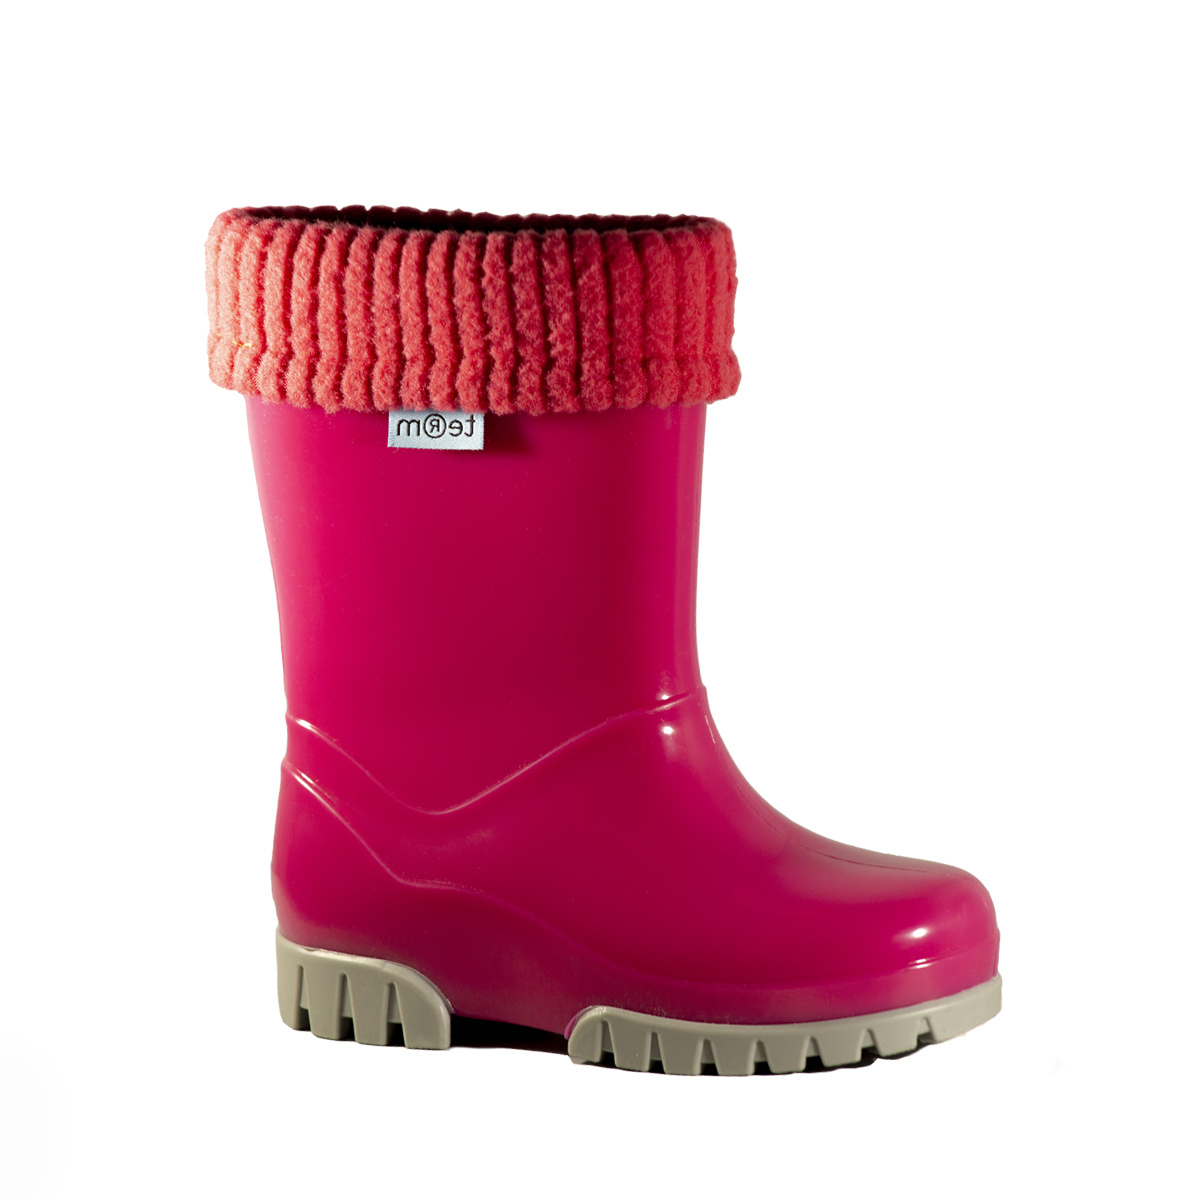 Term Toughies Girls Wellies Pink